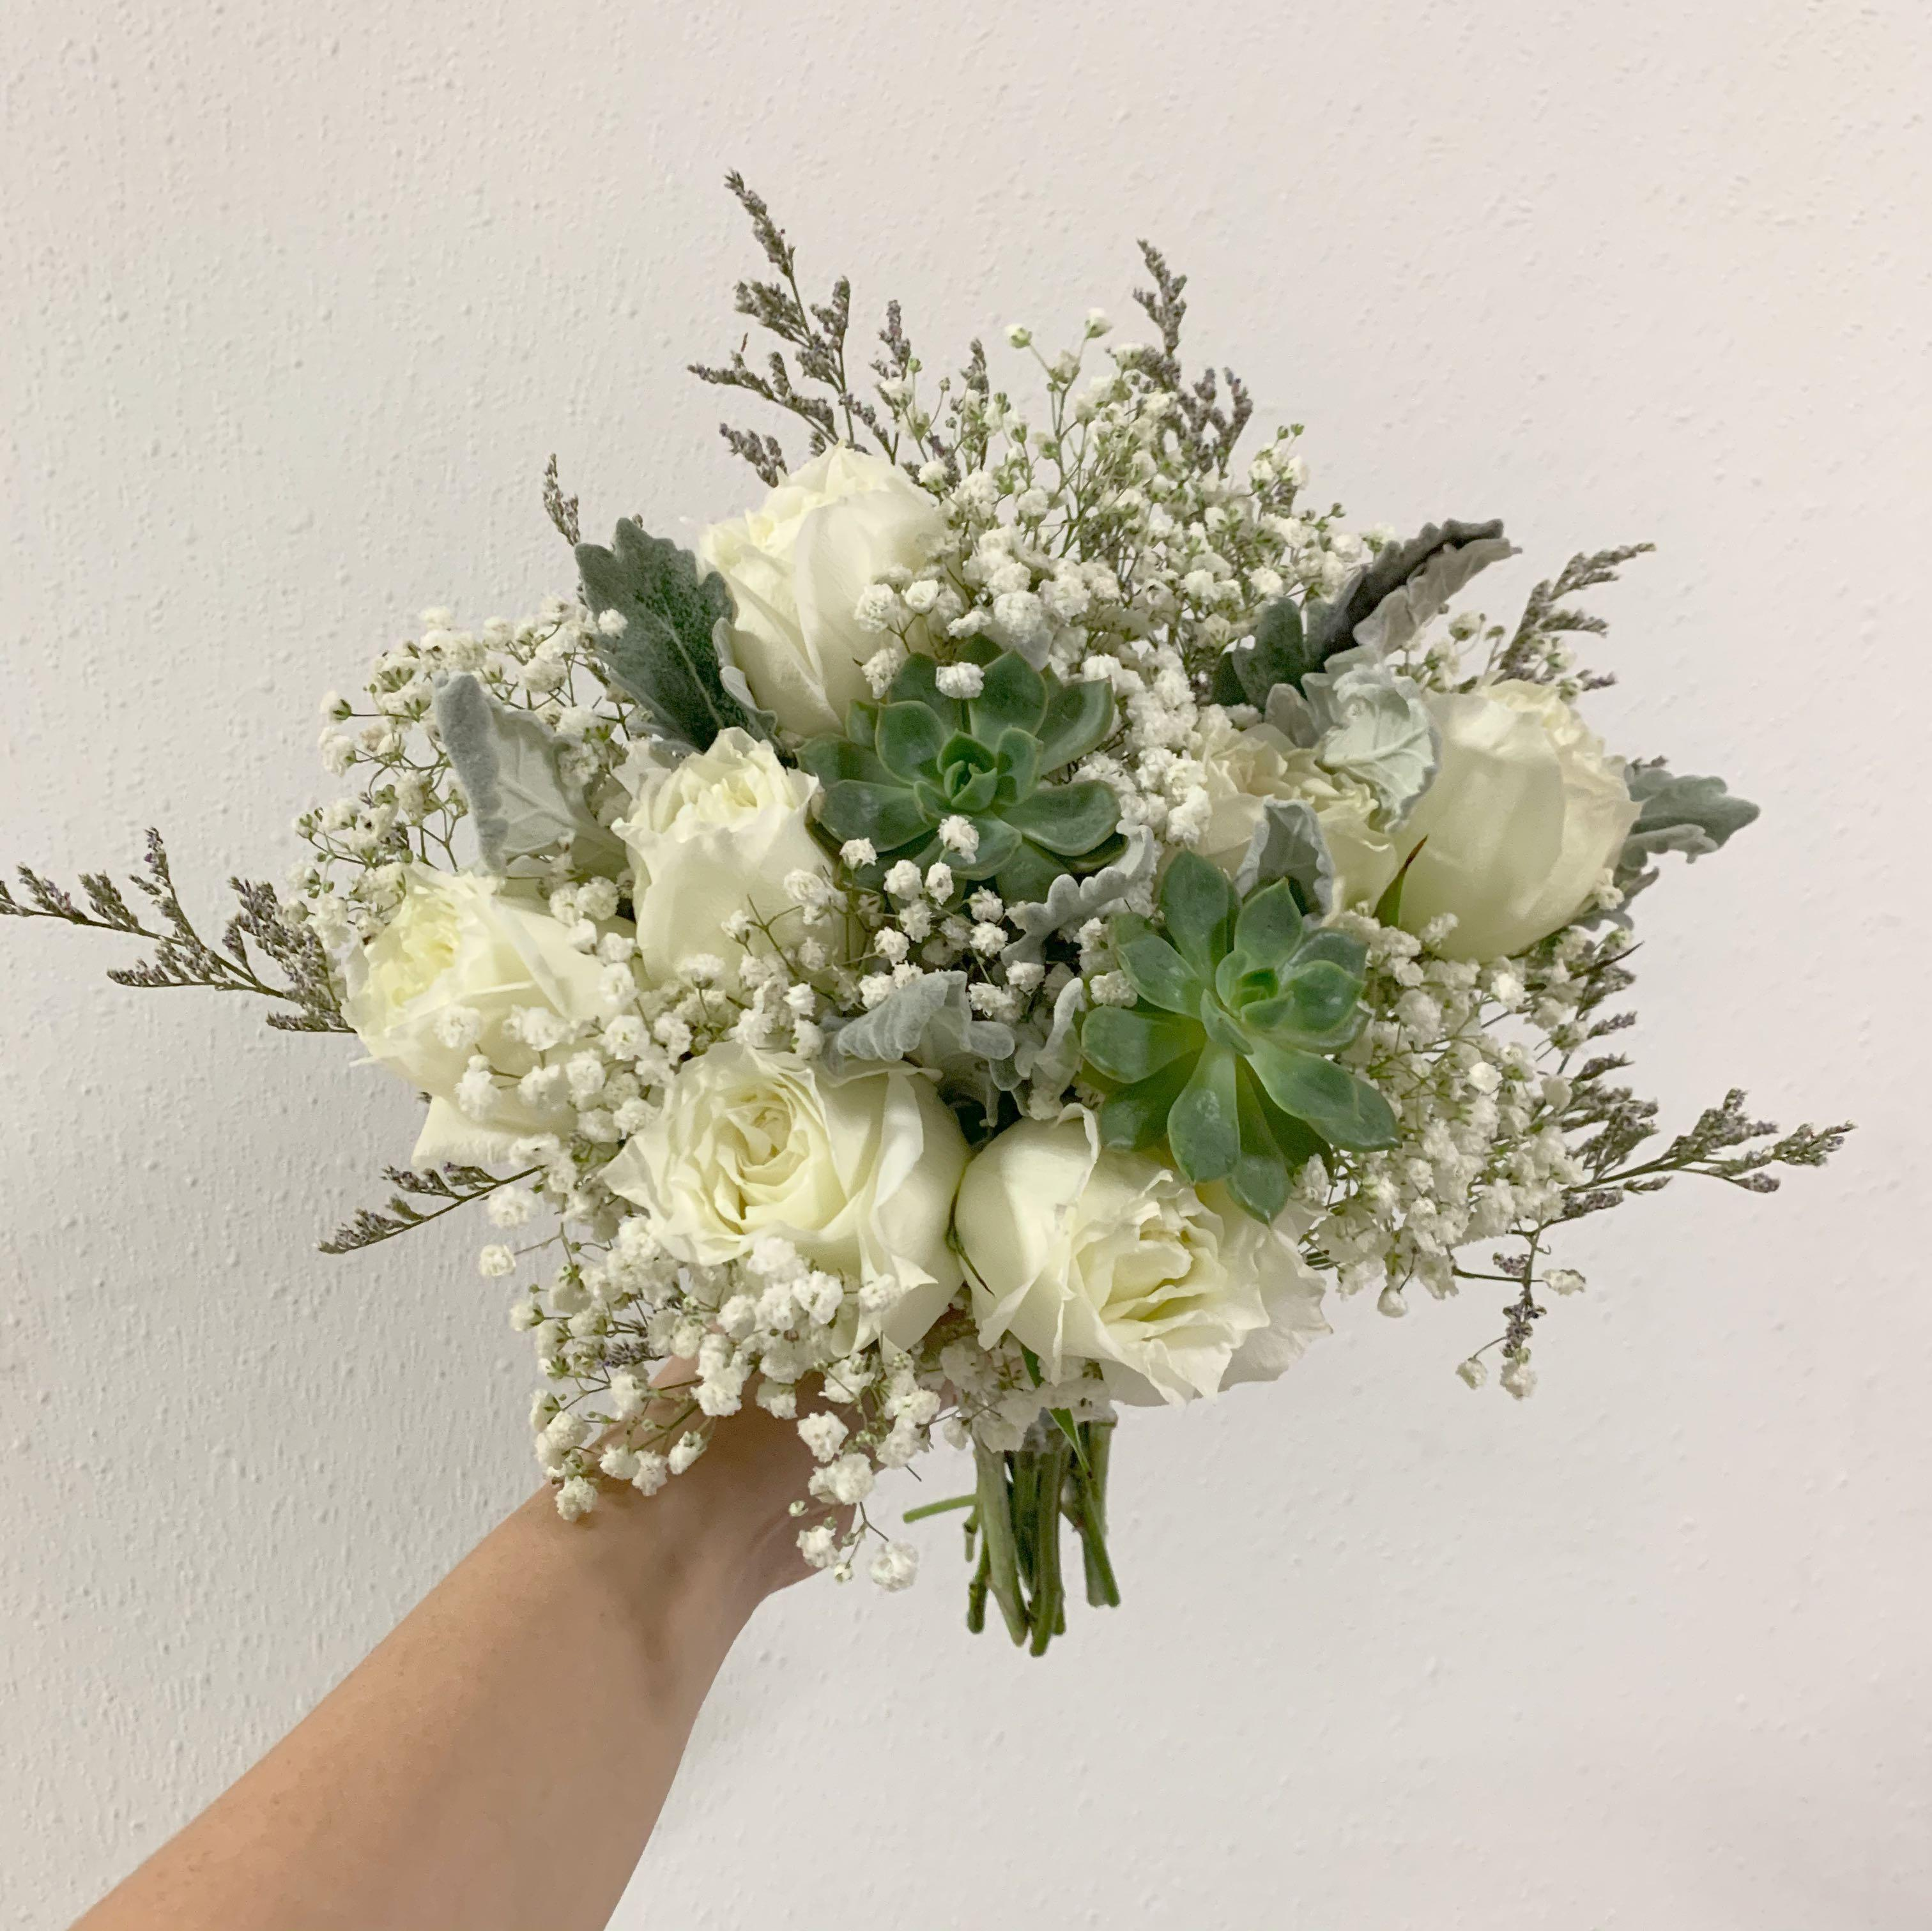 Rom Bouquet Of White Roses And Green Succulent With Baby Breath Wedding Flower Package Gardening Flowers Bouquets On Carousell